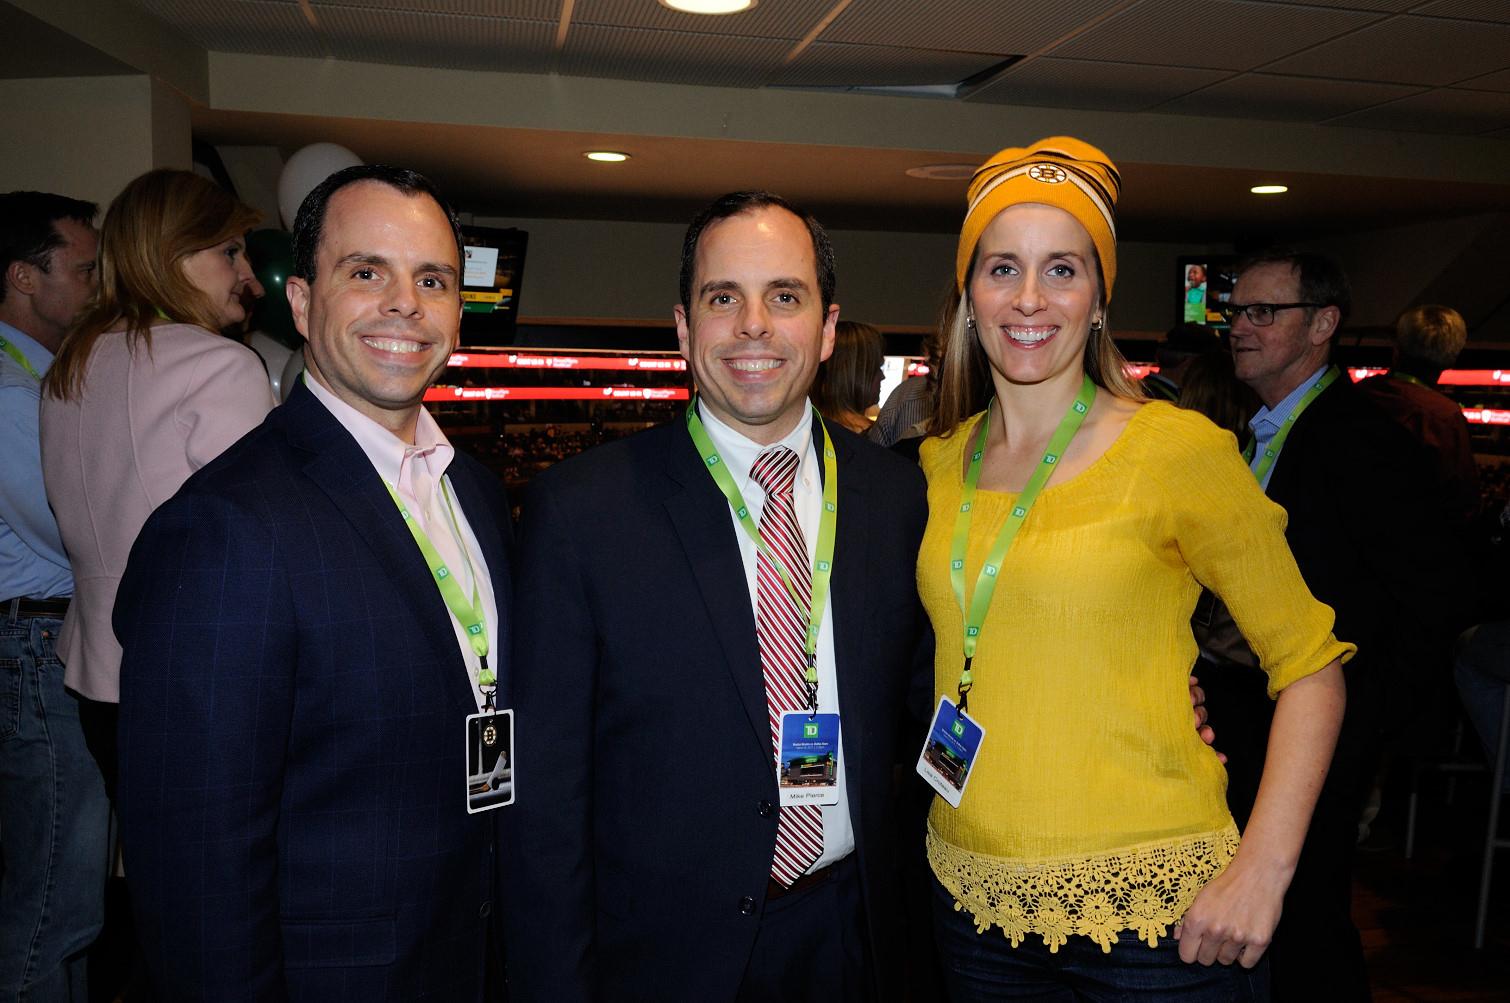 Td Bank Invites Friends Of Fraxa To Watch The Bruins Fragile X